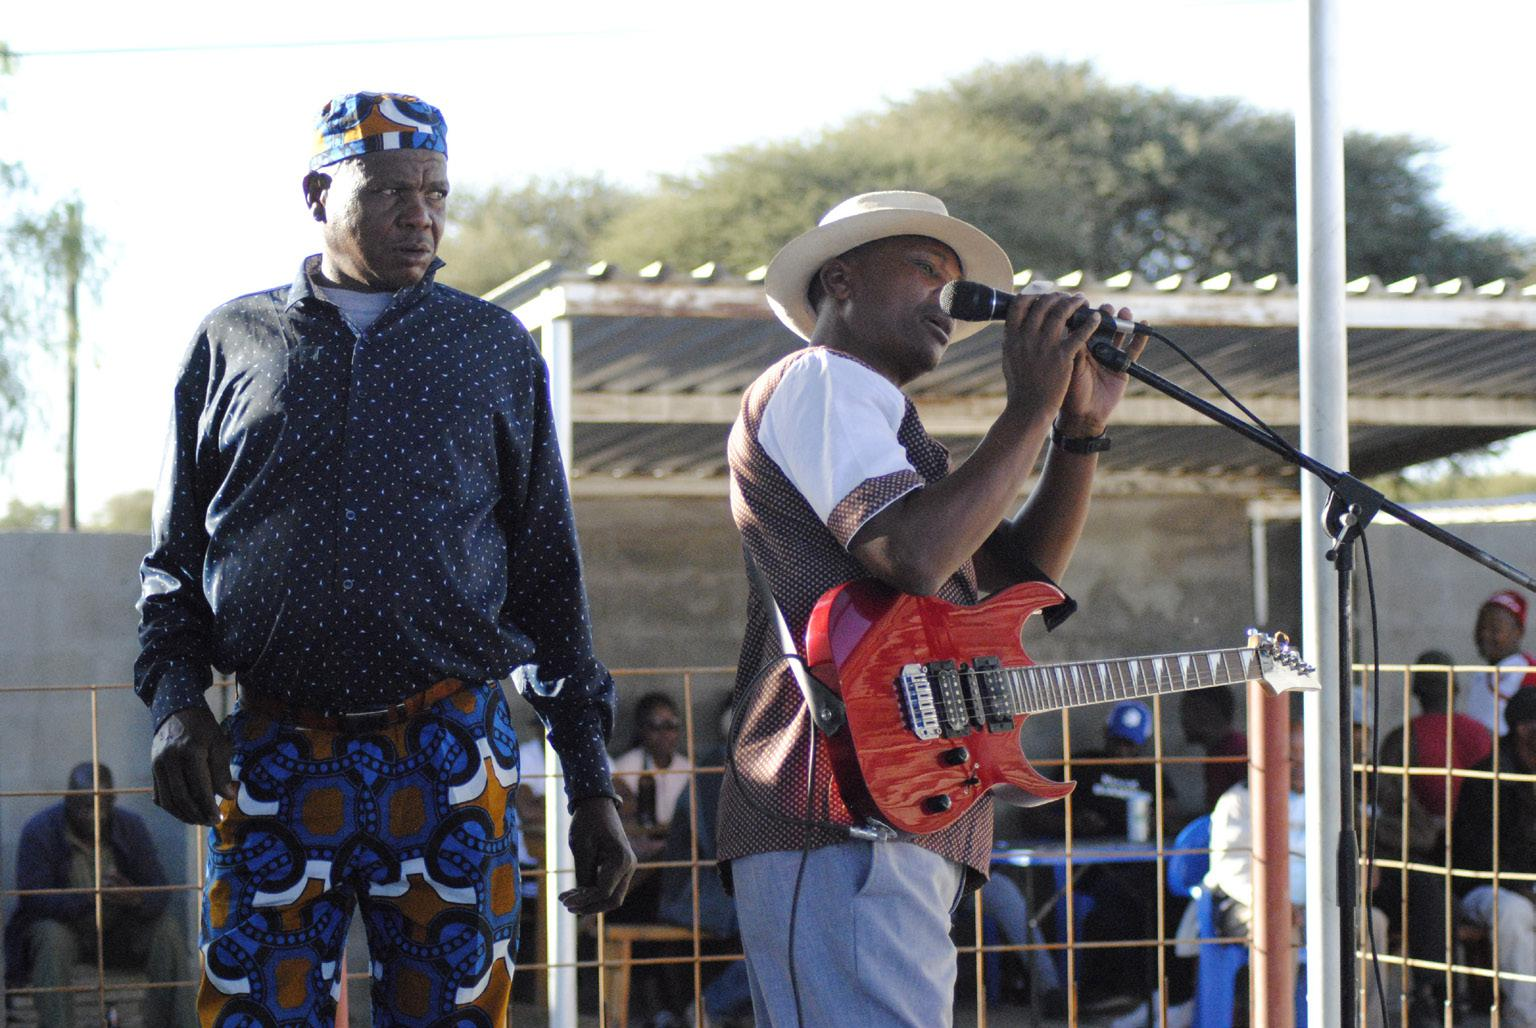 FIGURE 9. Sibongile Kgaila (left) and Solly Sebotso (right) during the soundcheck (Kweneng, 30th June 2019_photo S. Montaquila)